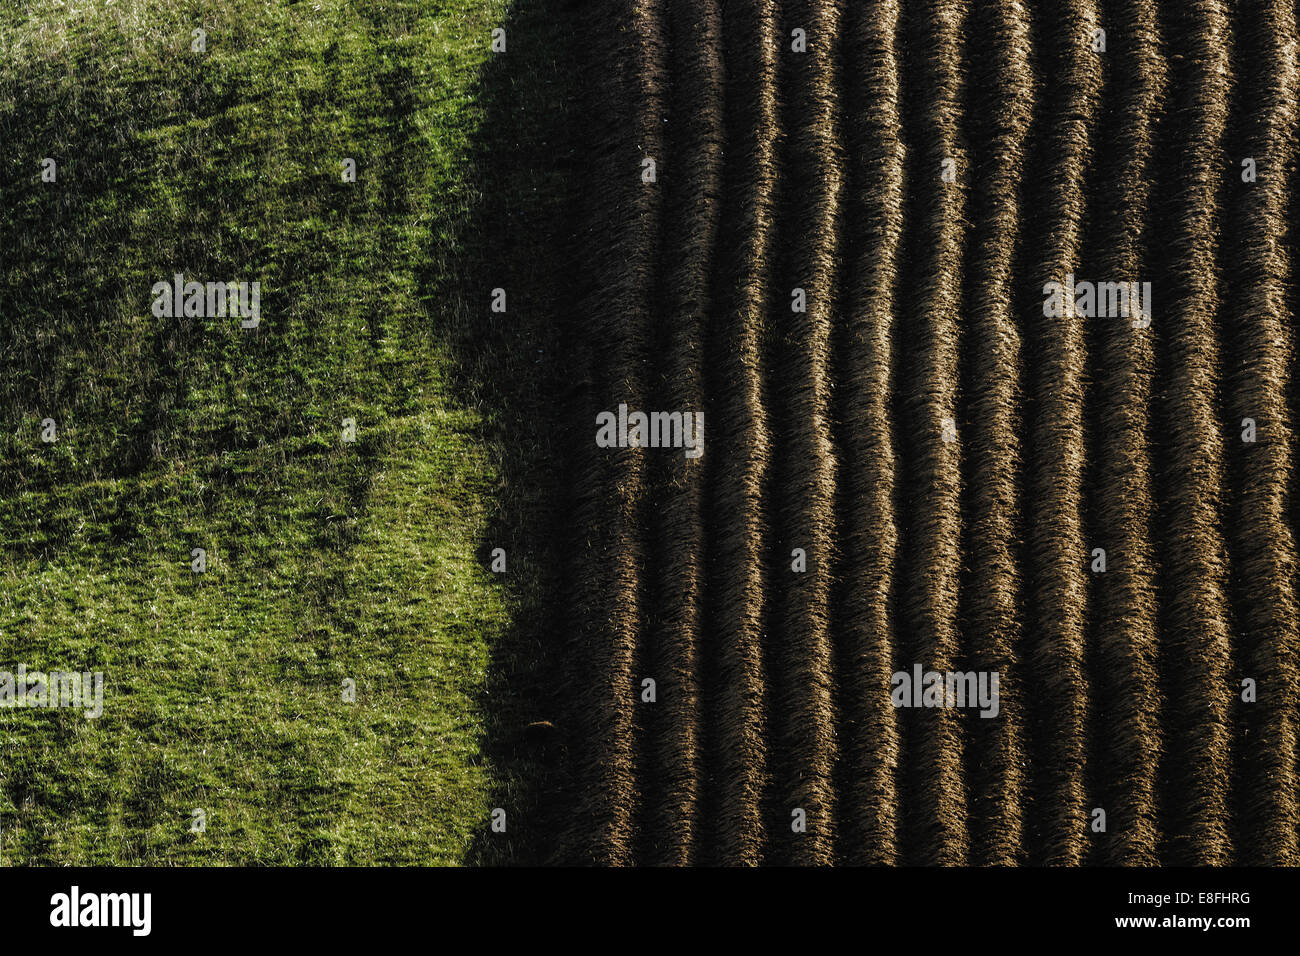 Extreme close up of green material - Stock Image